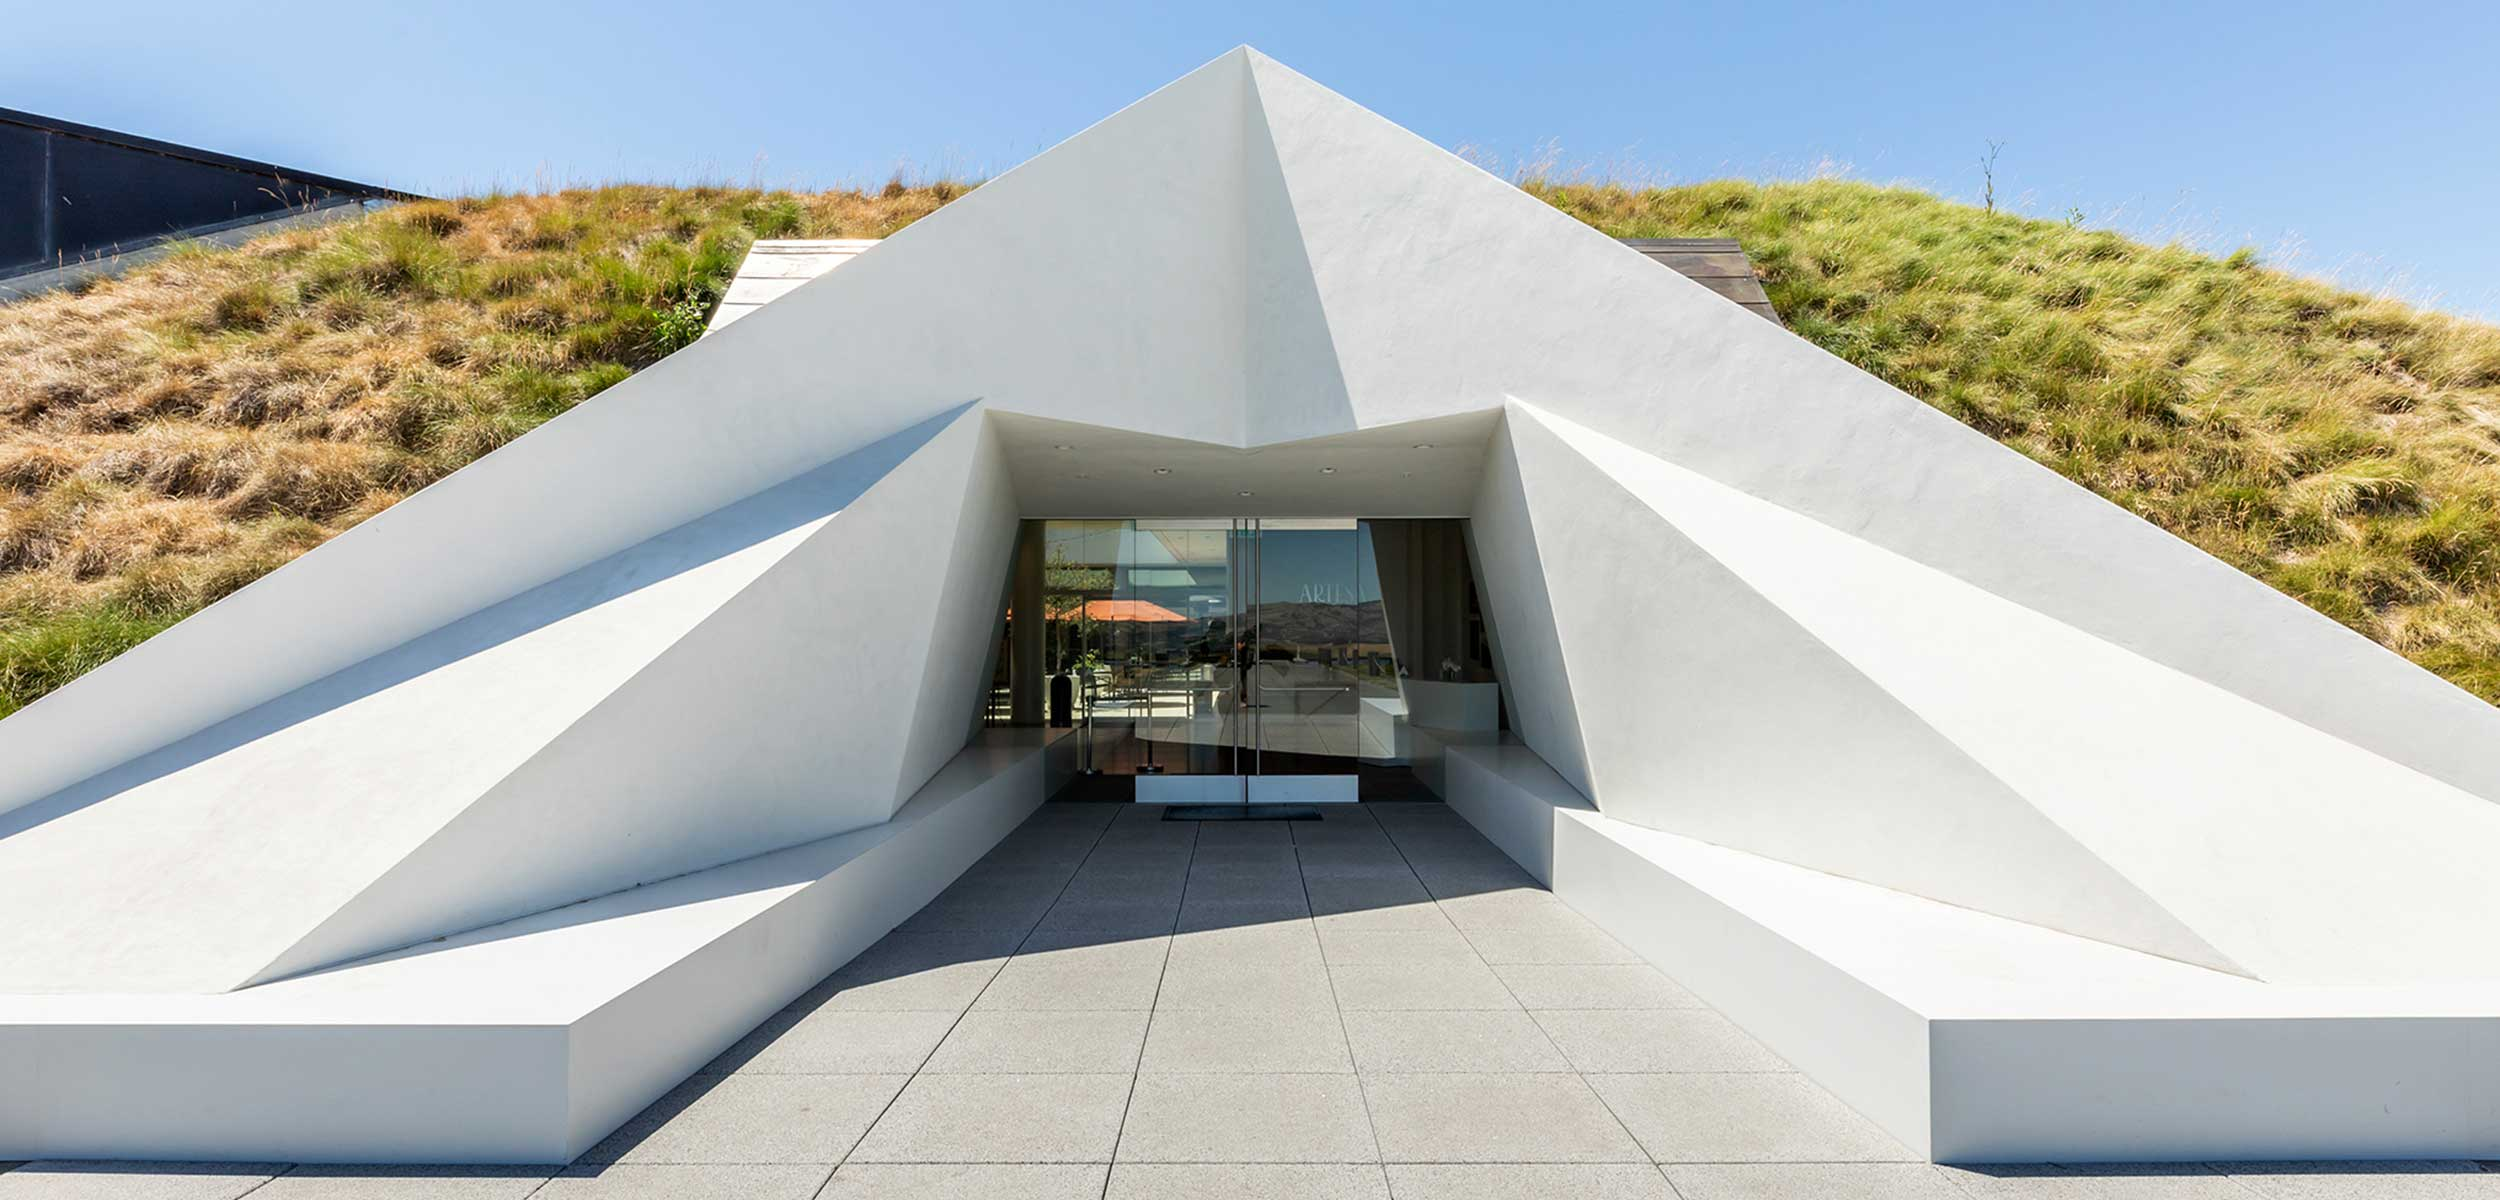 White geometric avant garde building at the entrance to Artesa Winery, Napa Valley.